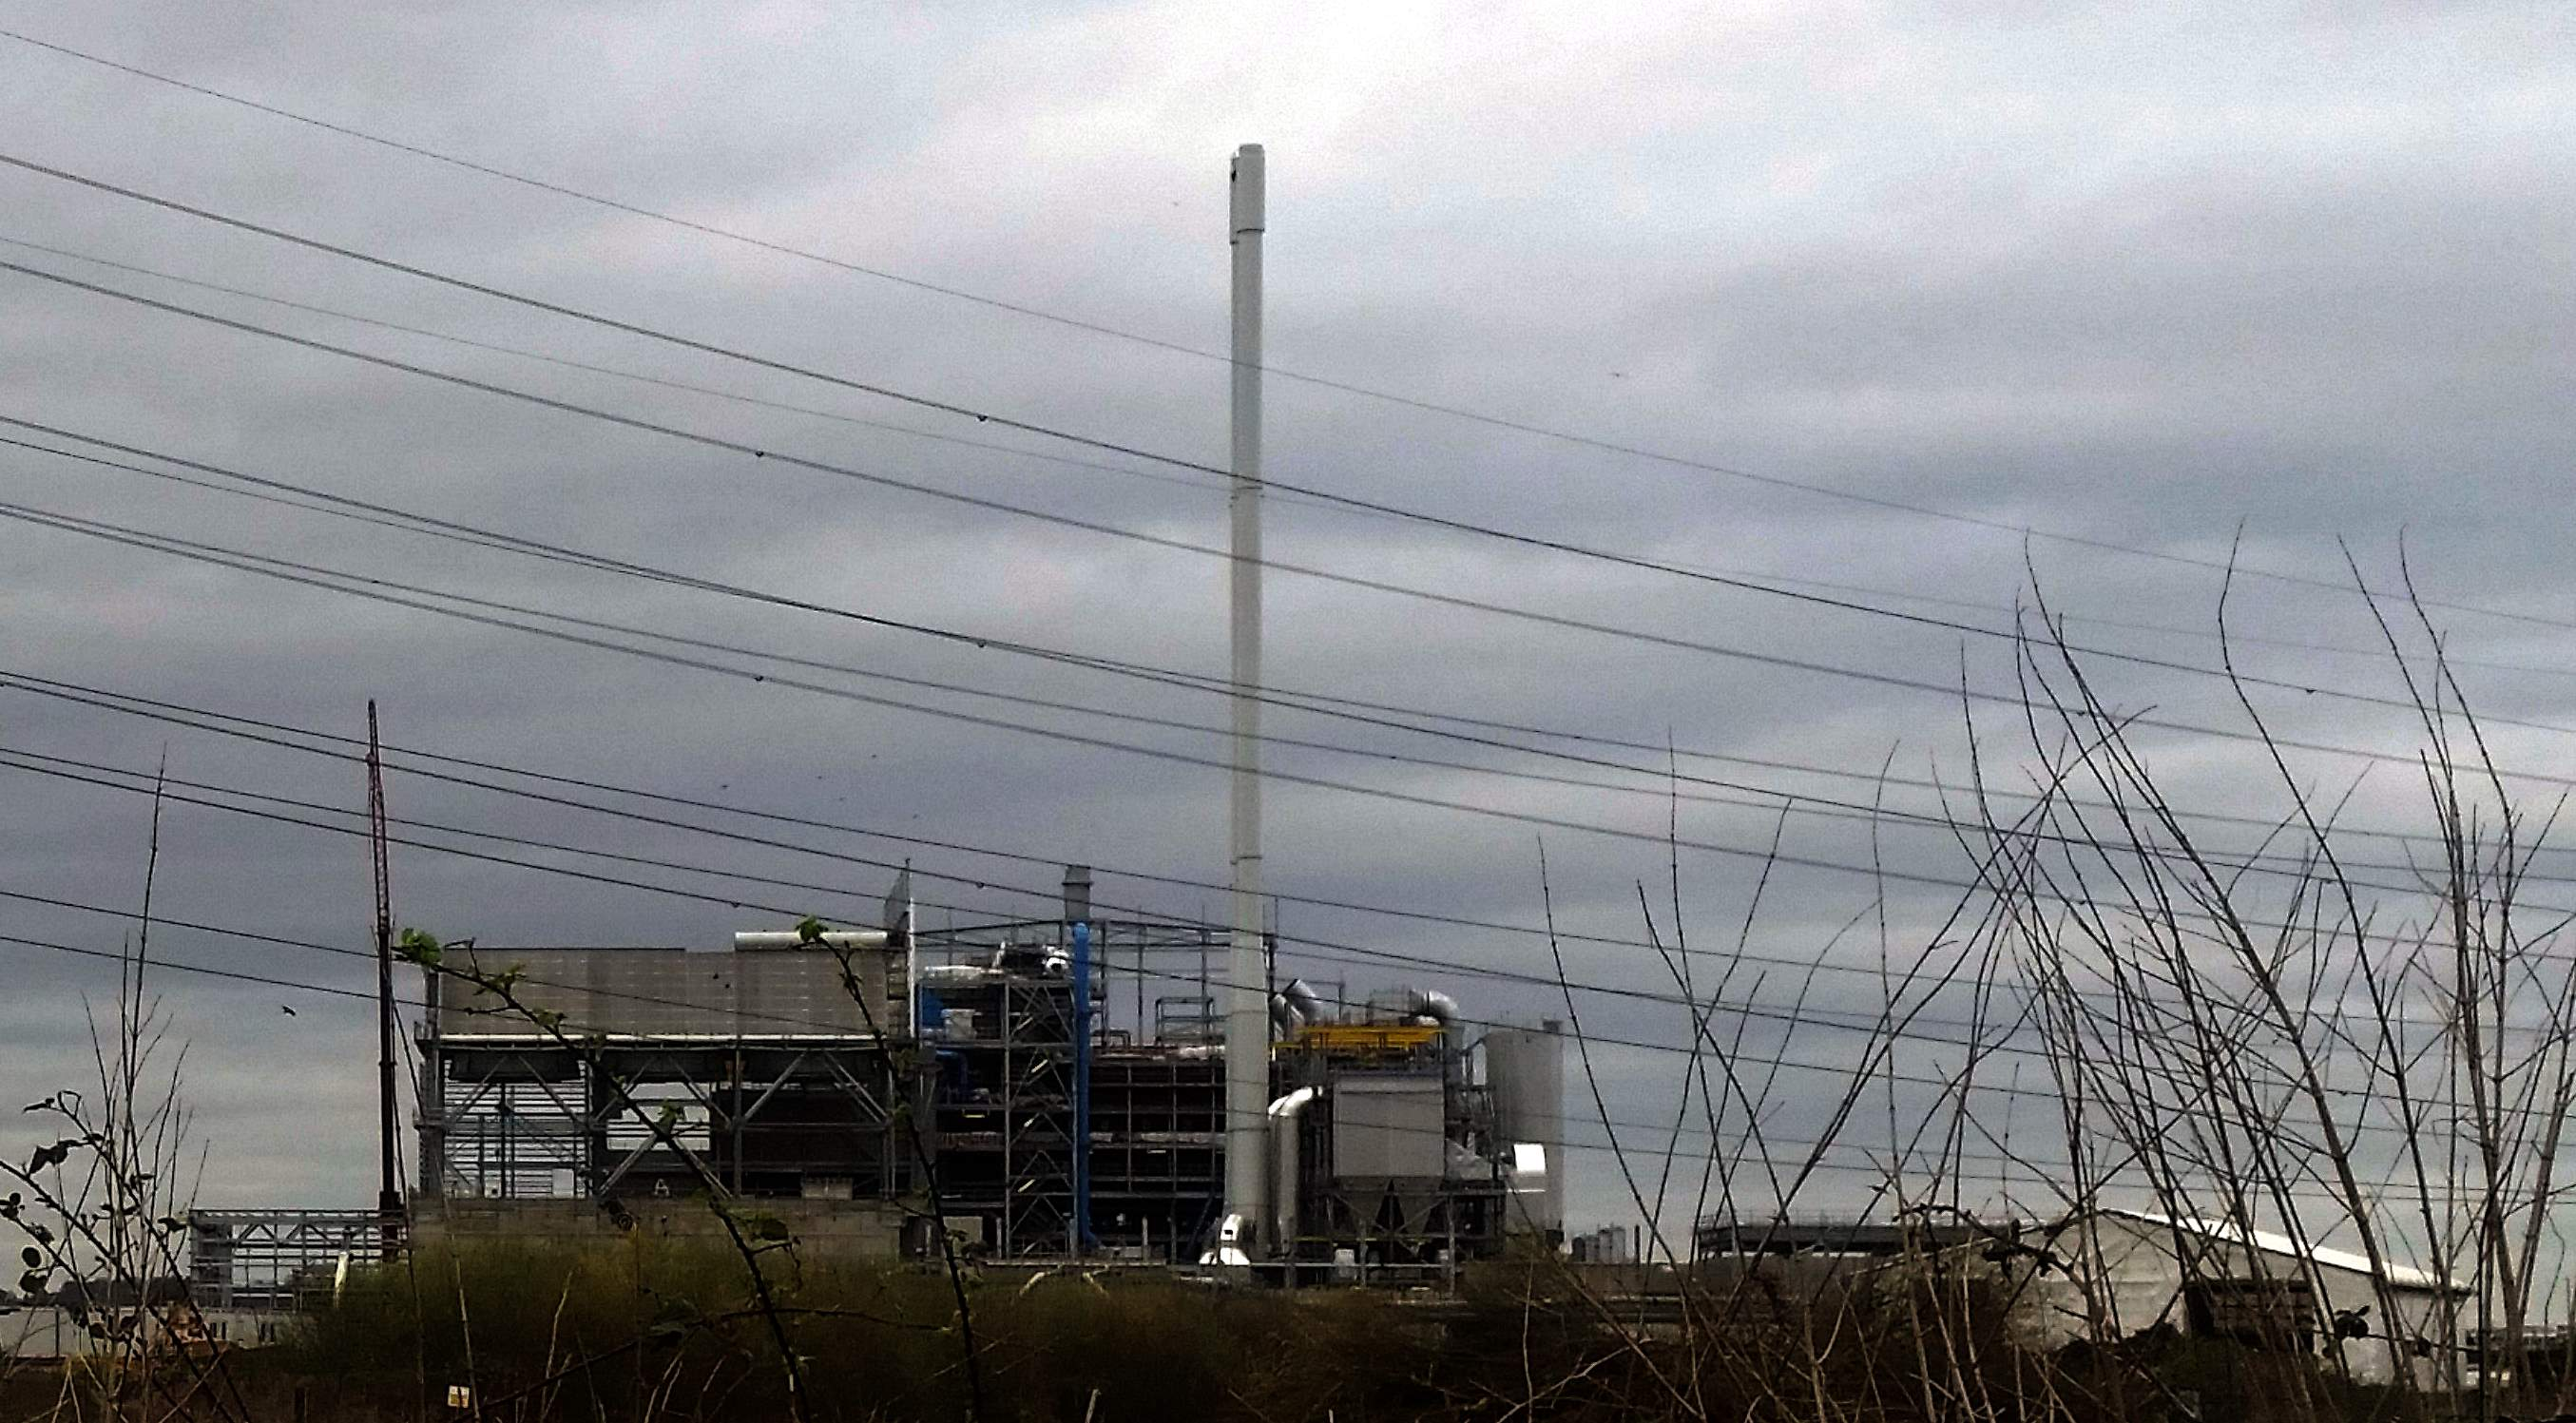 The Beddington Incinerator during construction - a new Waste Management UK facility.